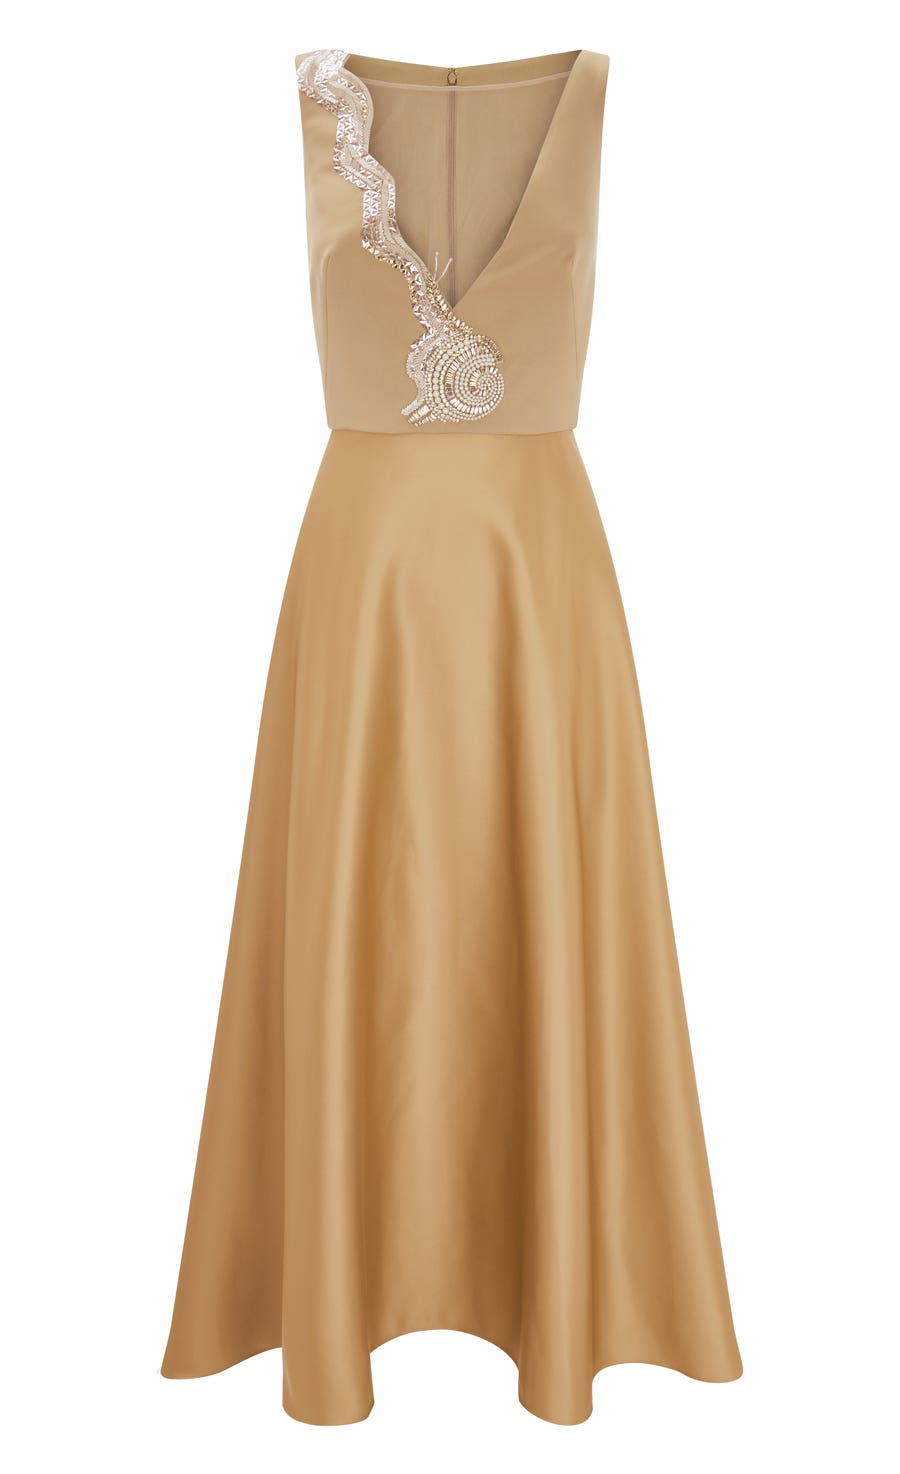 Waterlily Midi Dress, Gold